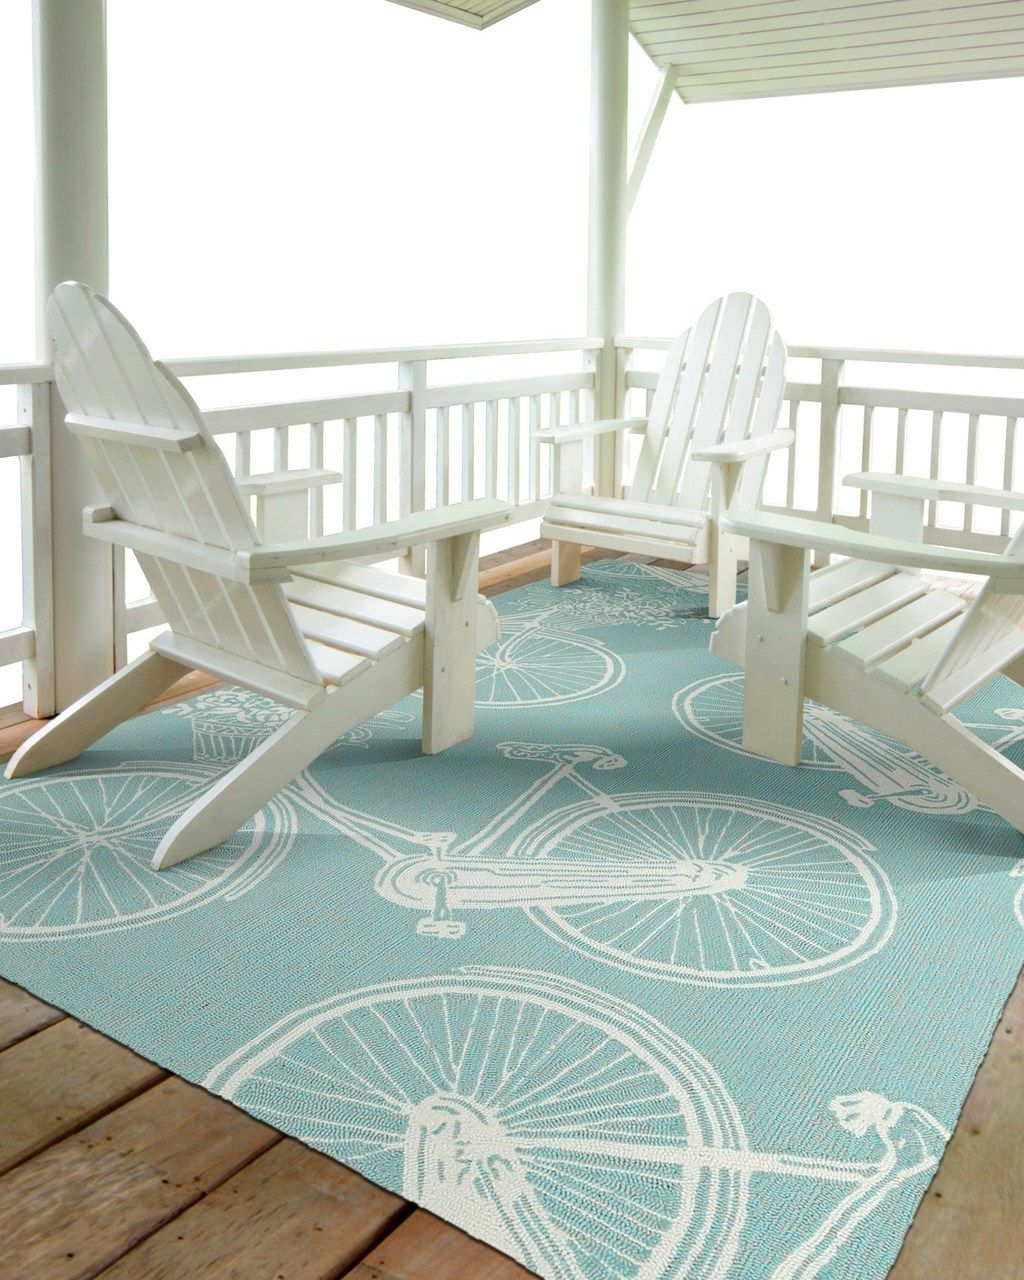 Light Blue Beach Bicycles Rug | Bicycling, Beach and Lights